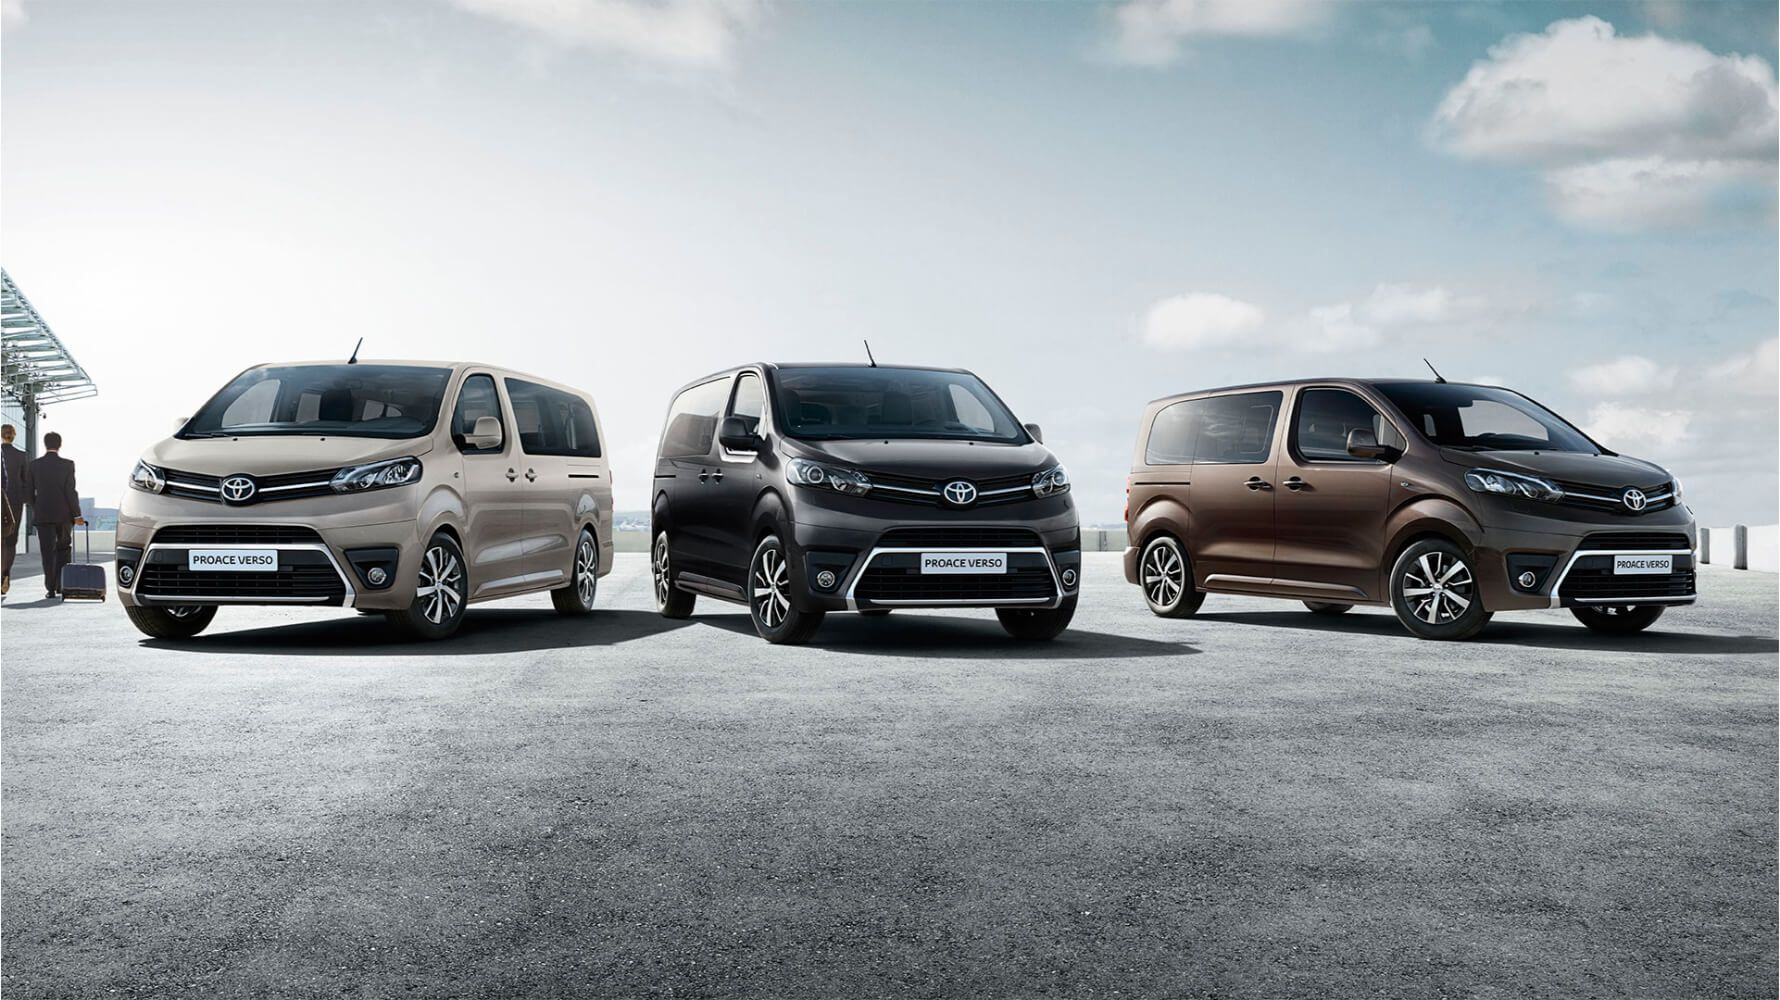 toyota_proace_verso_2019_gallery_002_full_tcm_3046_1703760